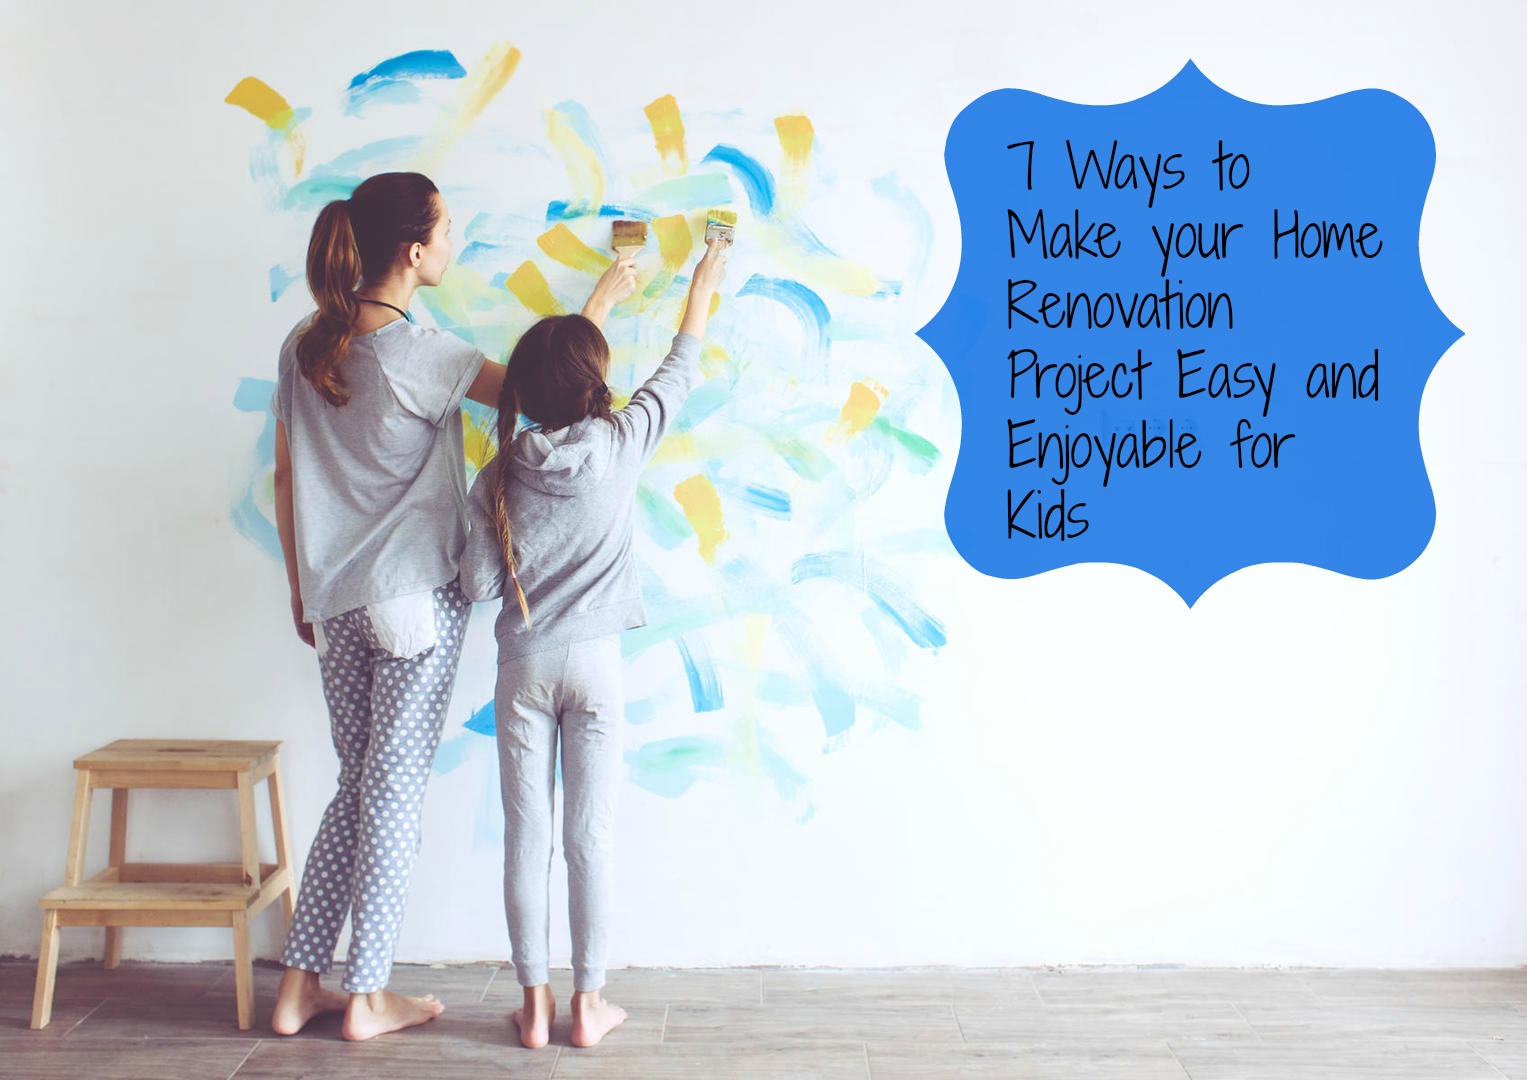 7 Ways to Make your Home Renovation Project Easy and Enjoyable for Kids